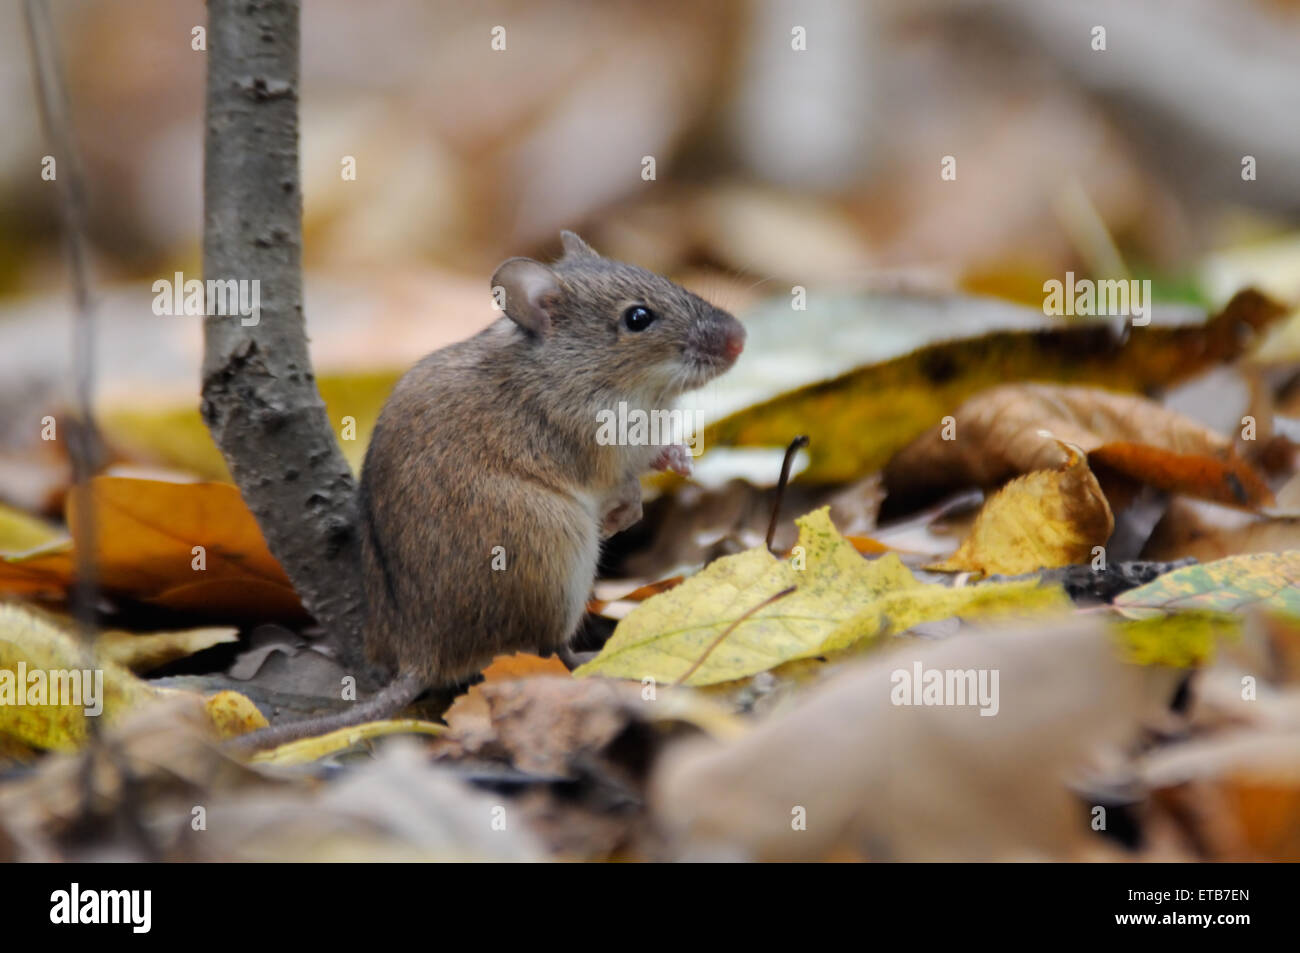 Striped Field Mouse among dry leaves - Stock Image